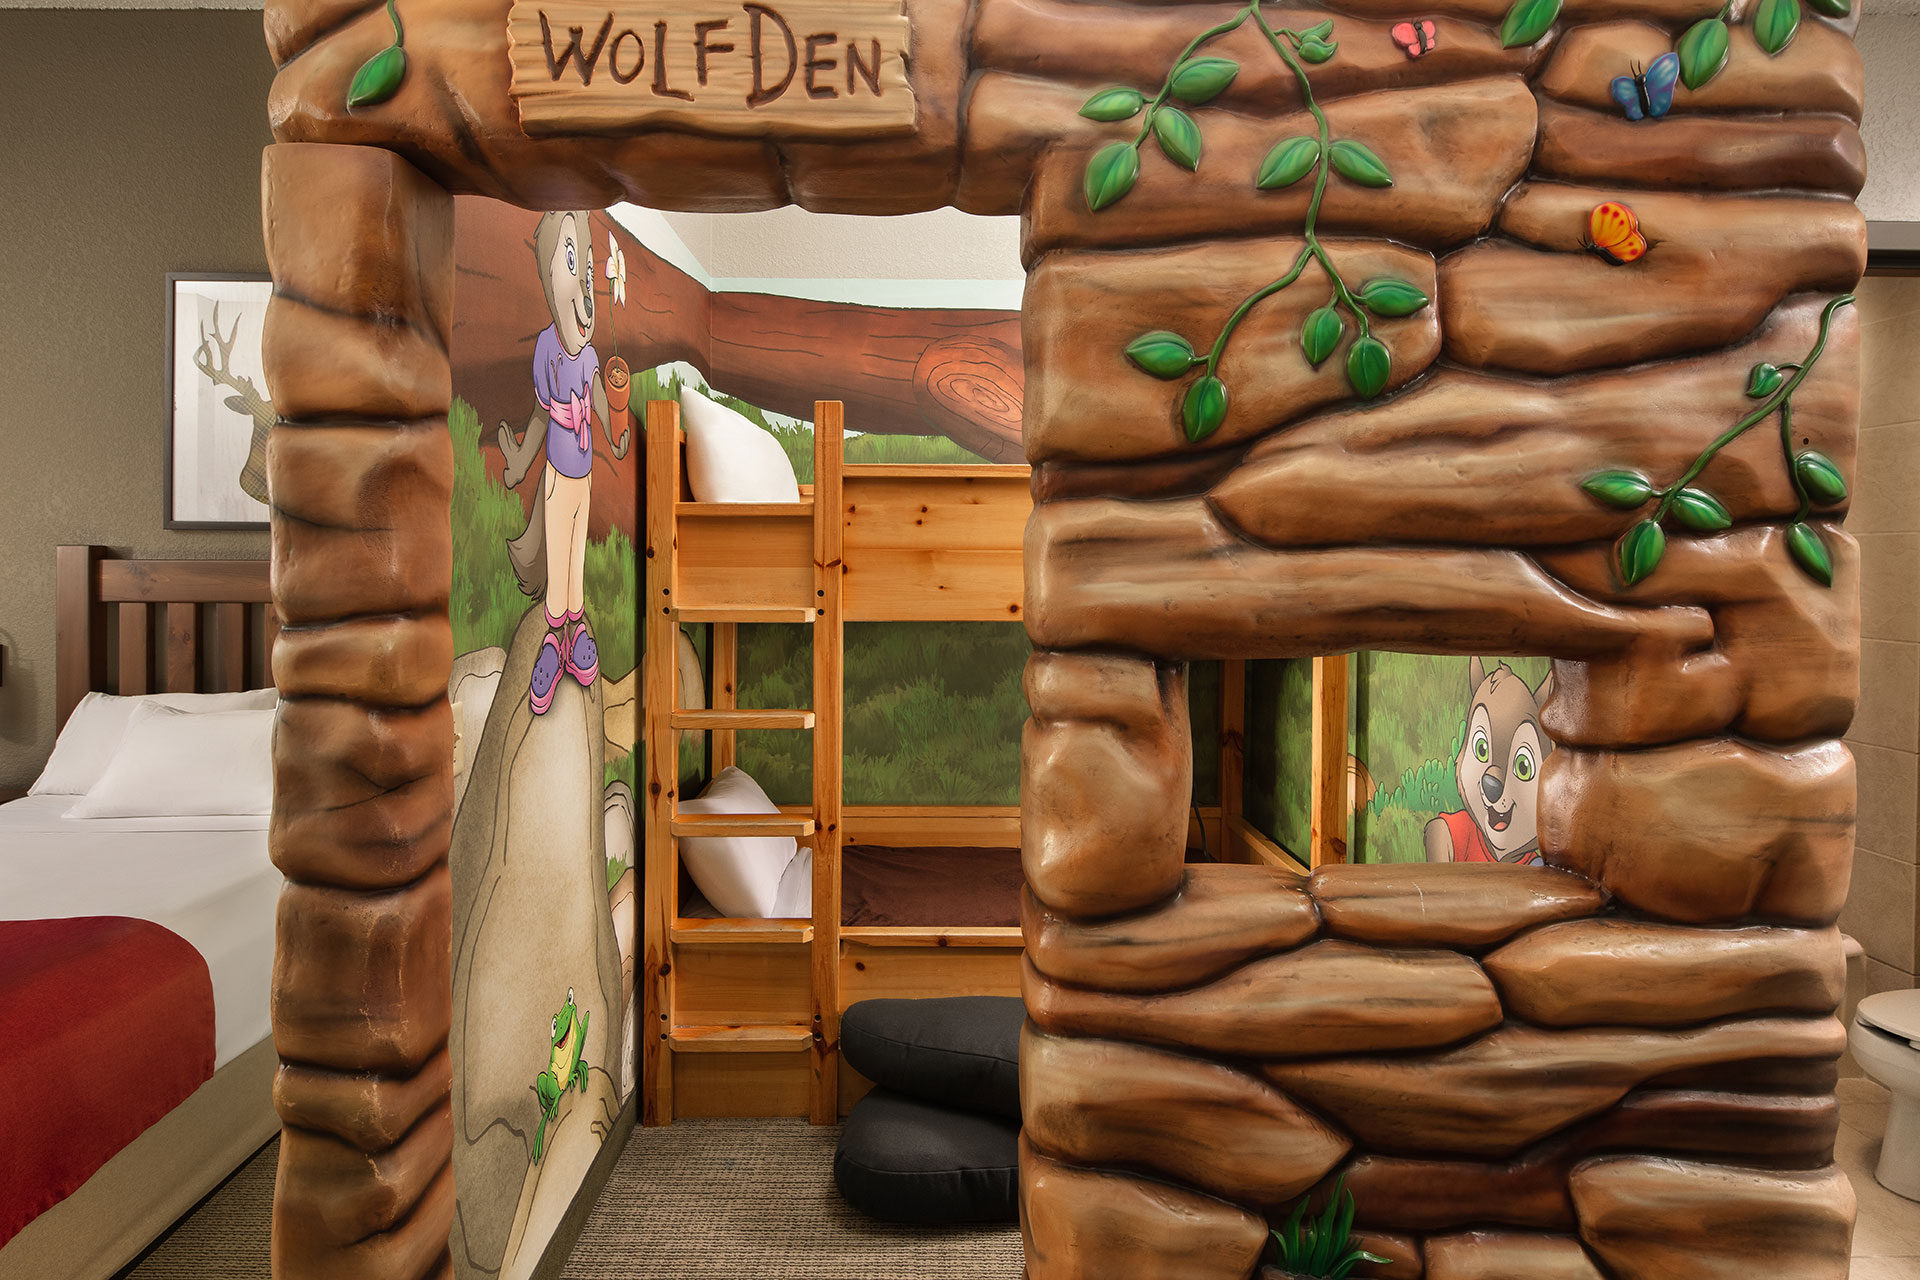 Wolf Den at Great Wolf Lodge; Courtesy of Great Wolf Lodge